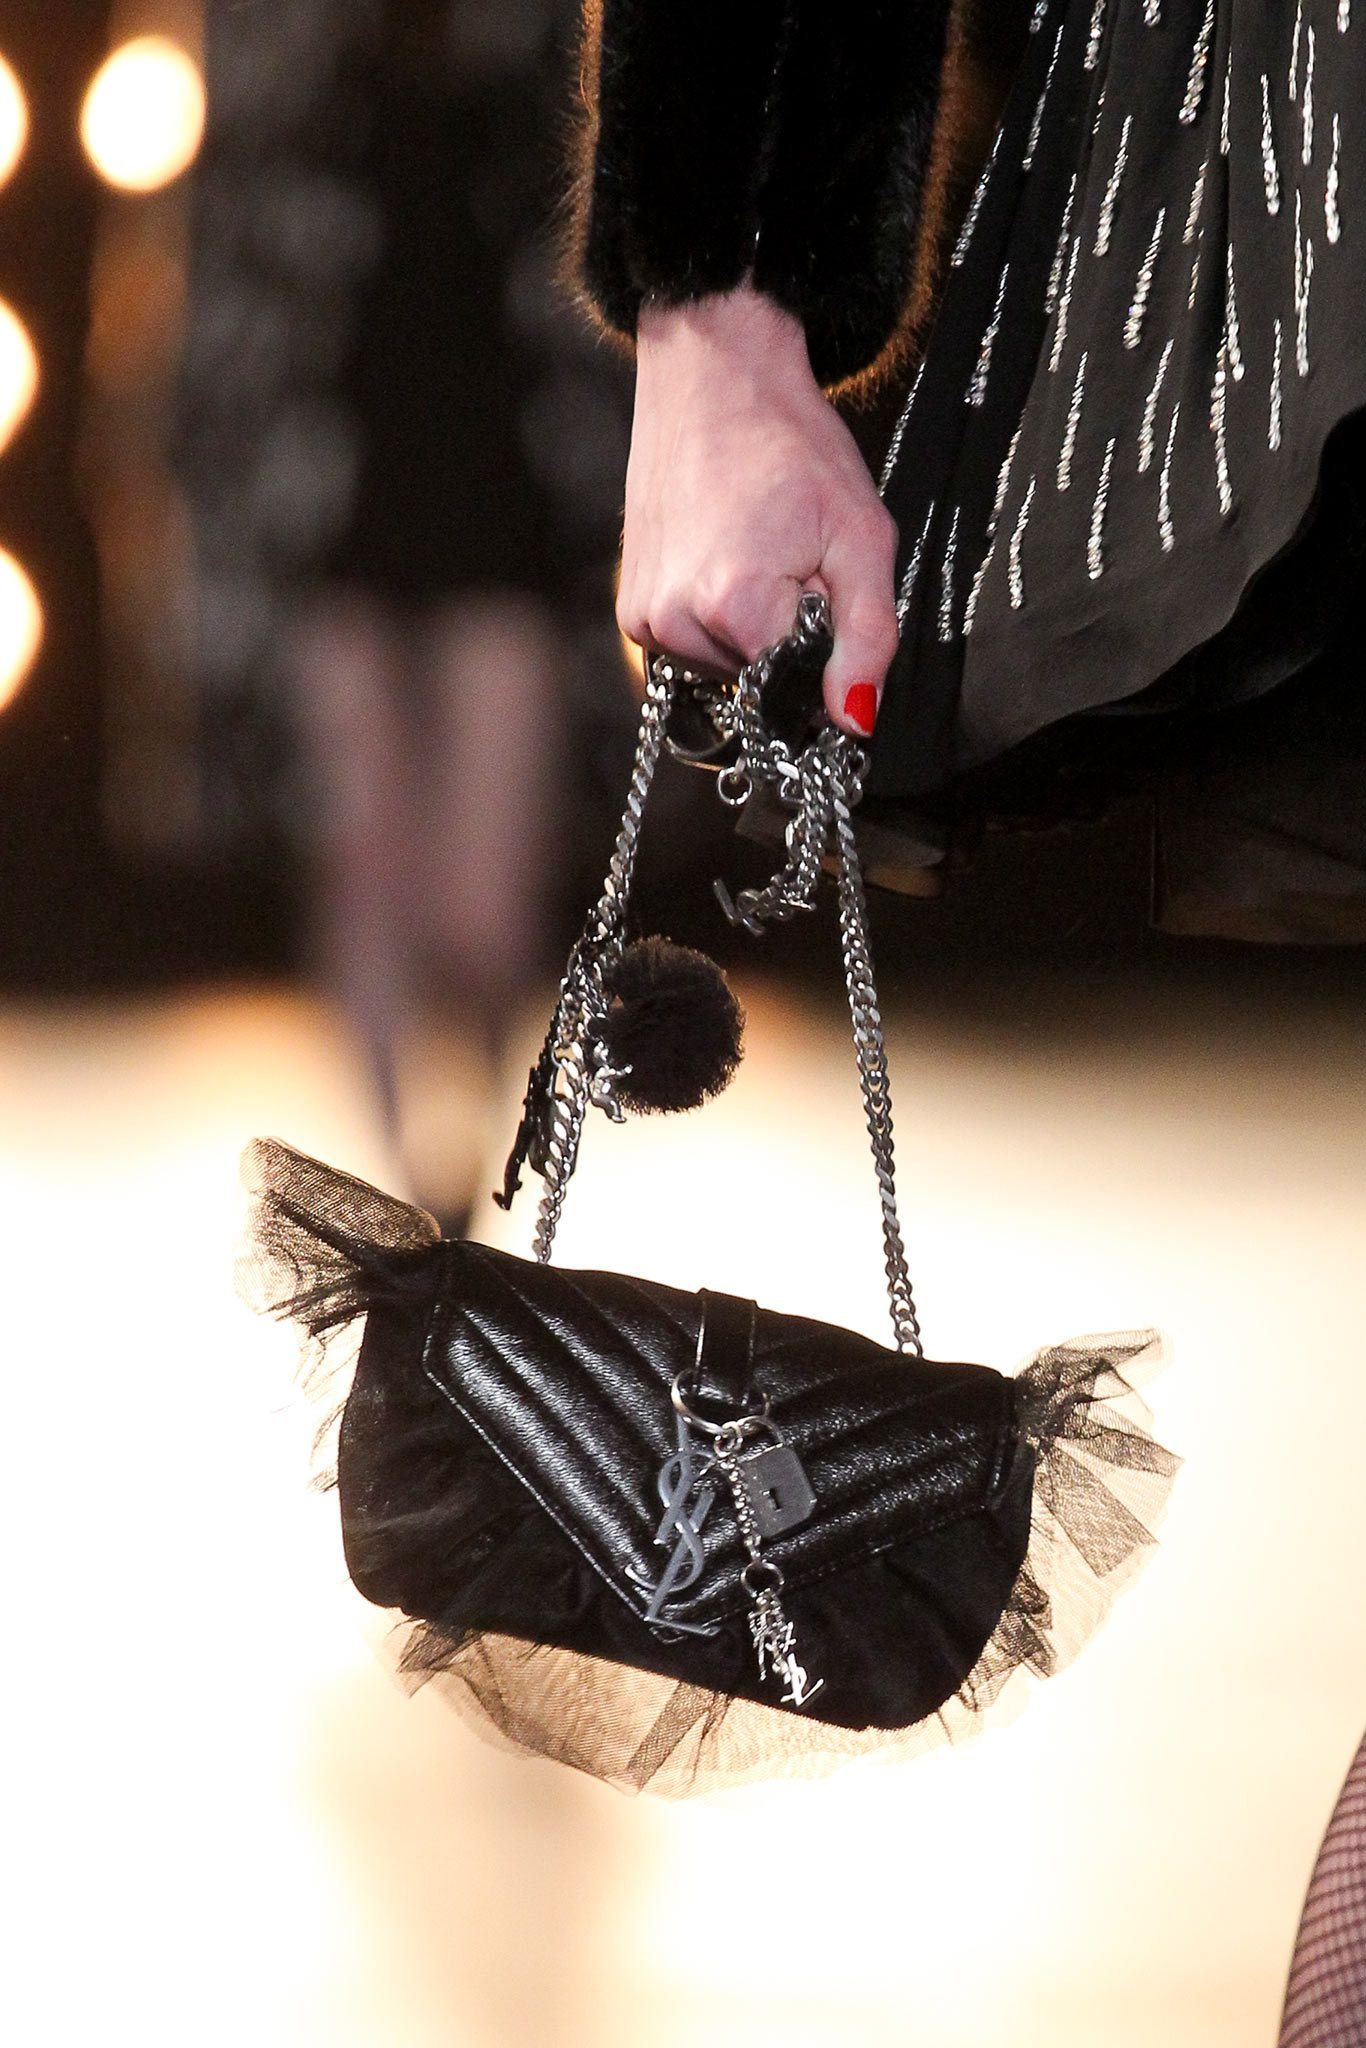 Saint Laurent Fall 2015 Ready-to-Wear Accessories Photos - Vogue